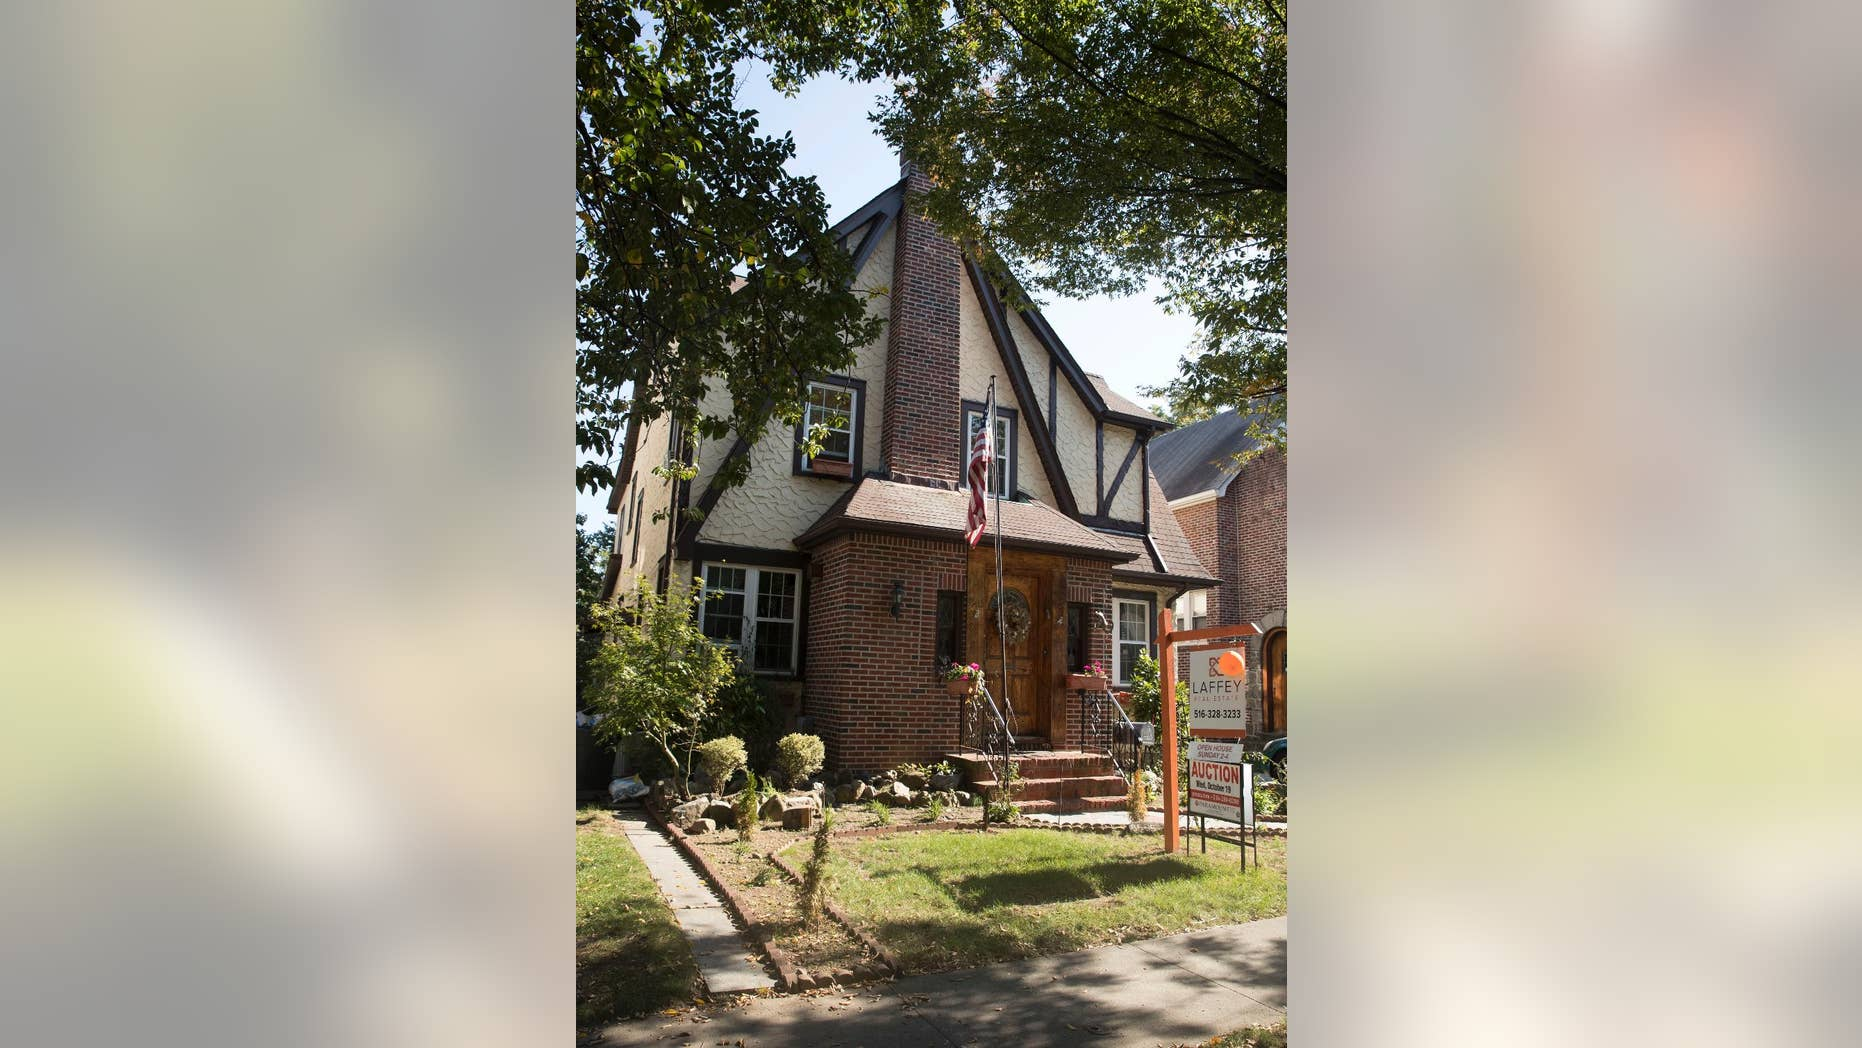 FILE - This Tuesday, Oct. 18, 2016 file photo, shows the exterior of a house in the Jamaica Estates neighborhood of the Queens borough of New York, where Republican presidential candidate Donald Trump spent his early childhood. Trump's boyhood home in New York City is going back on the auction block. Paramount Realty said the 1940 Tudor-style house in Jamaica Estates in Queens is being offered Jan. 17, 2017. (AP Photo/Mary Altaffer, File)